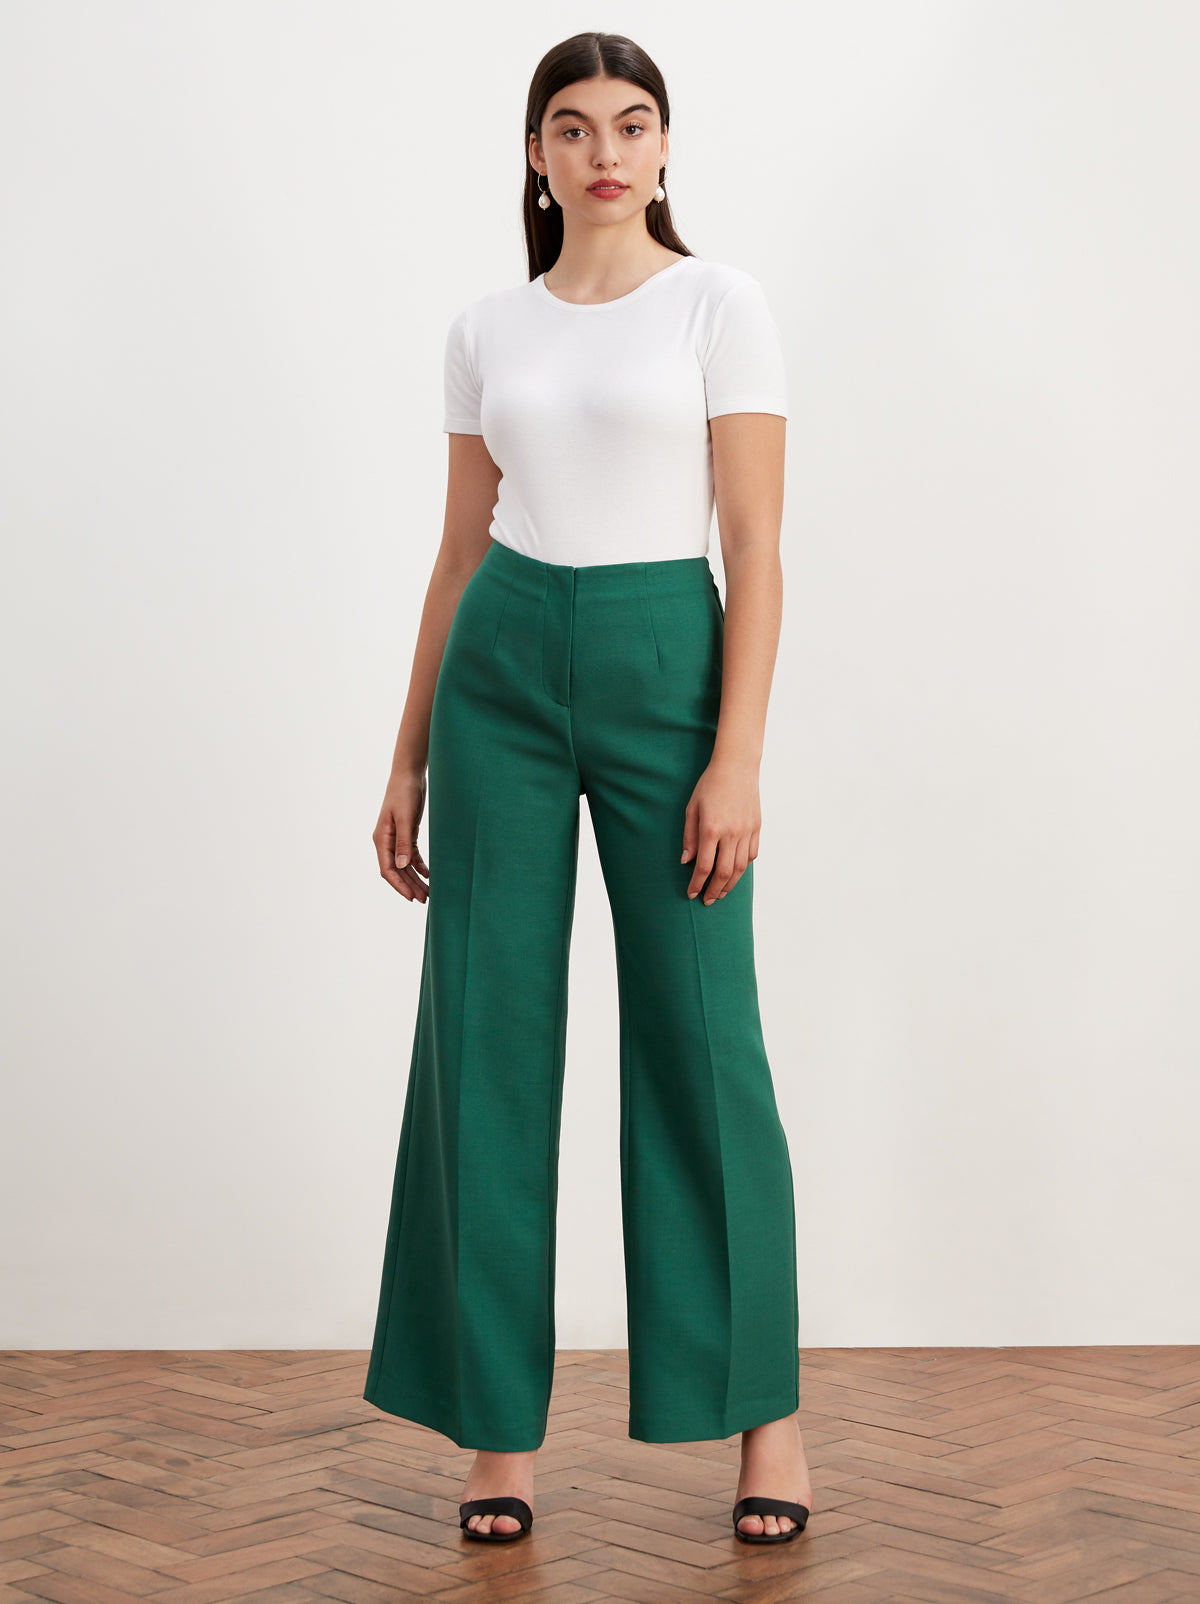 Agnes Green Tailored Trousers by KITRI Studio